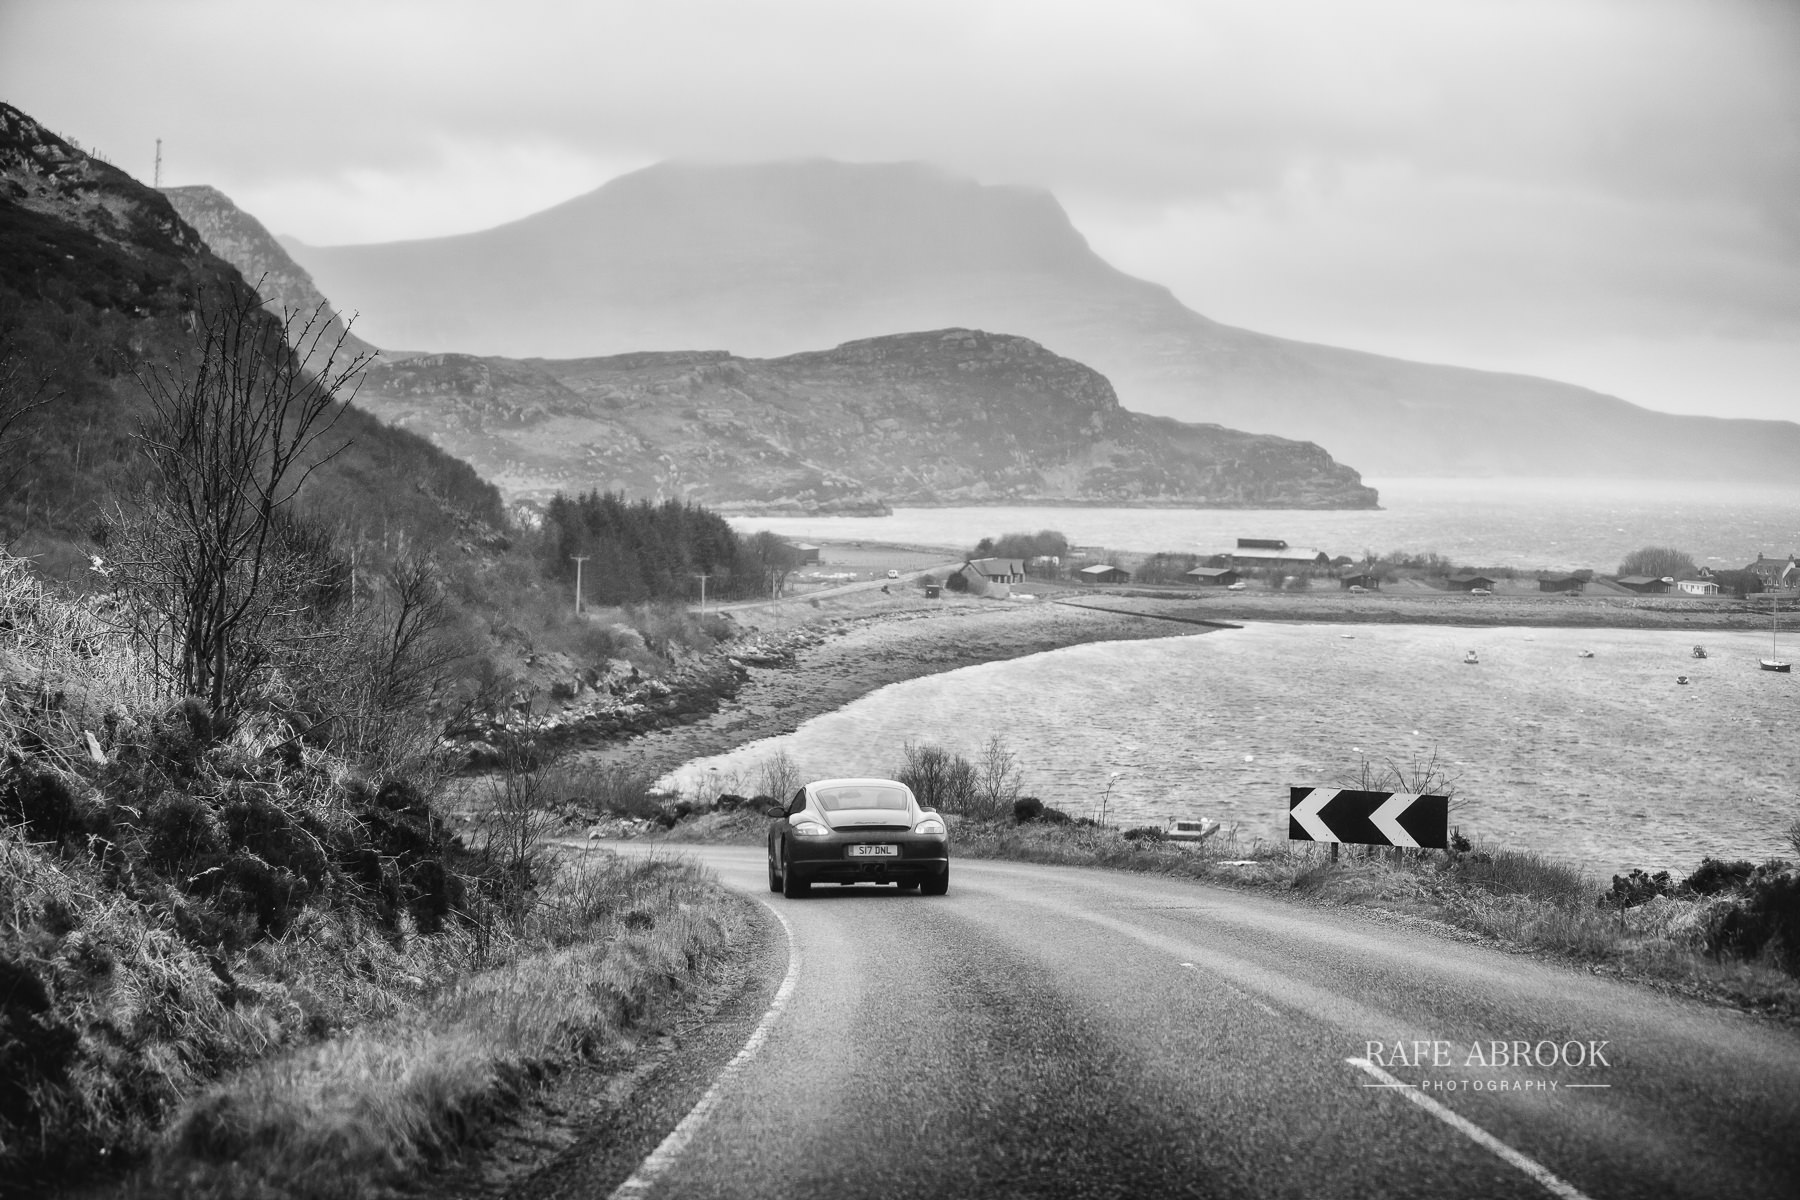 north coast 500 scotland porsche cayman gt4 golf r estate rafe abrook photography-1296.jpg